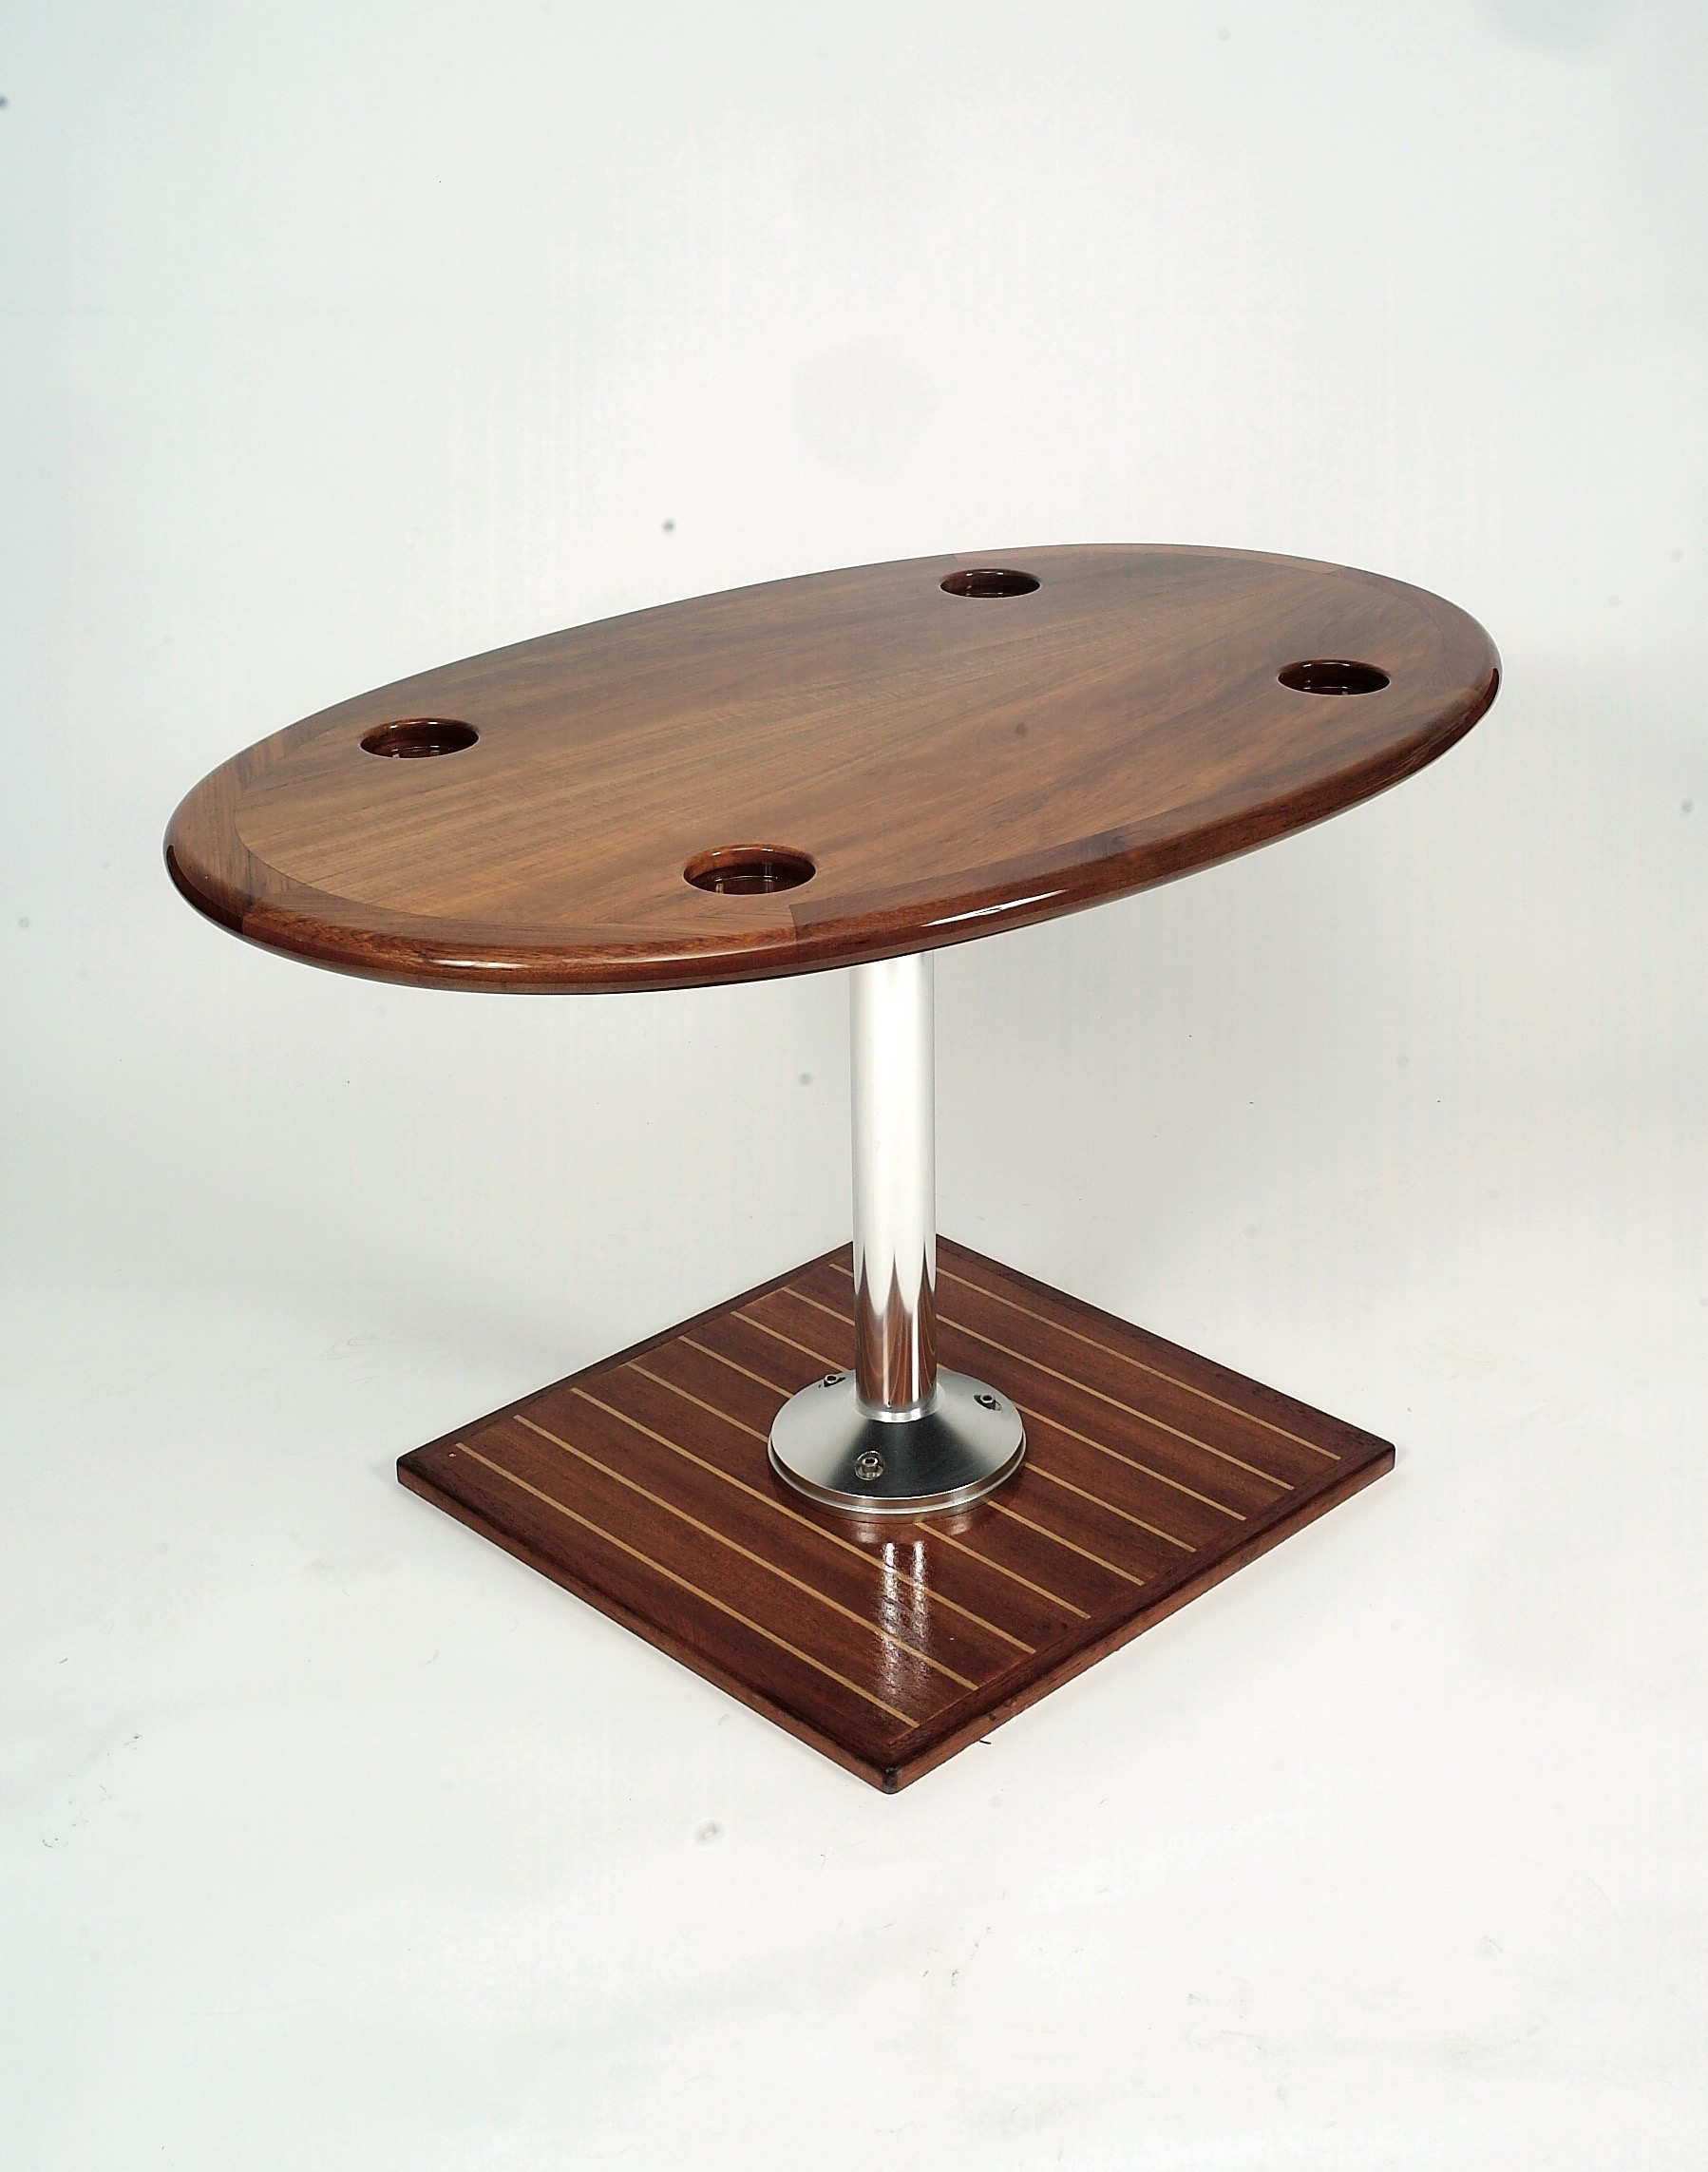 Teak Table with Cup Holders